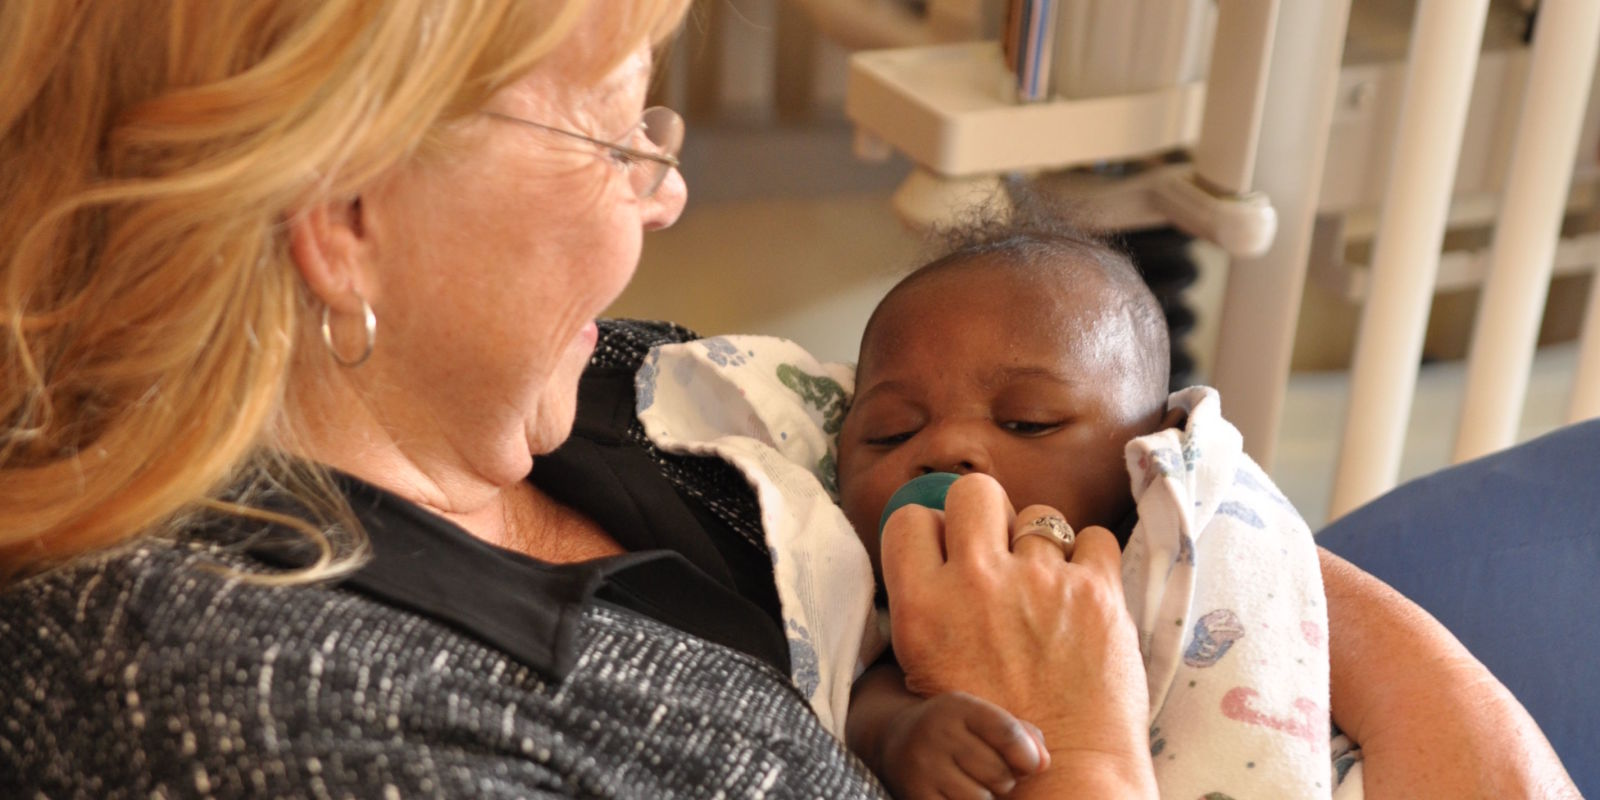 These Women Give Back by Rocking Hospitalized Babies Who Need Love